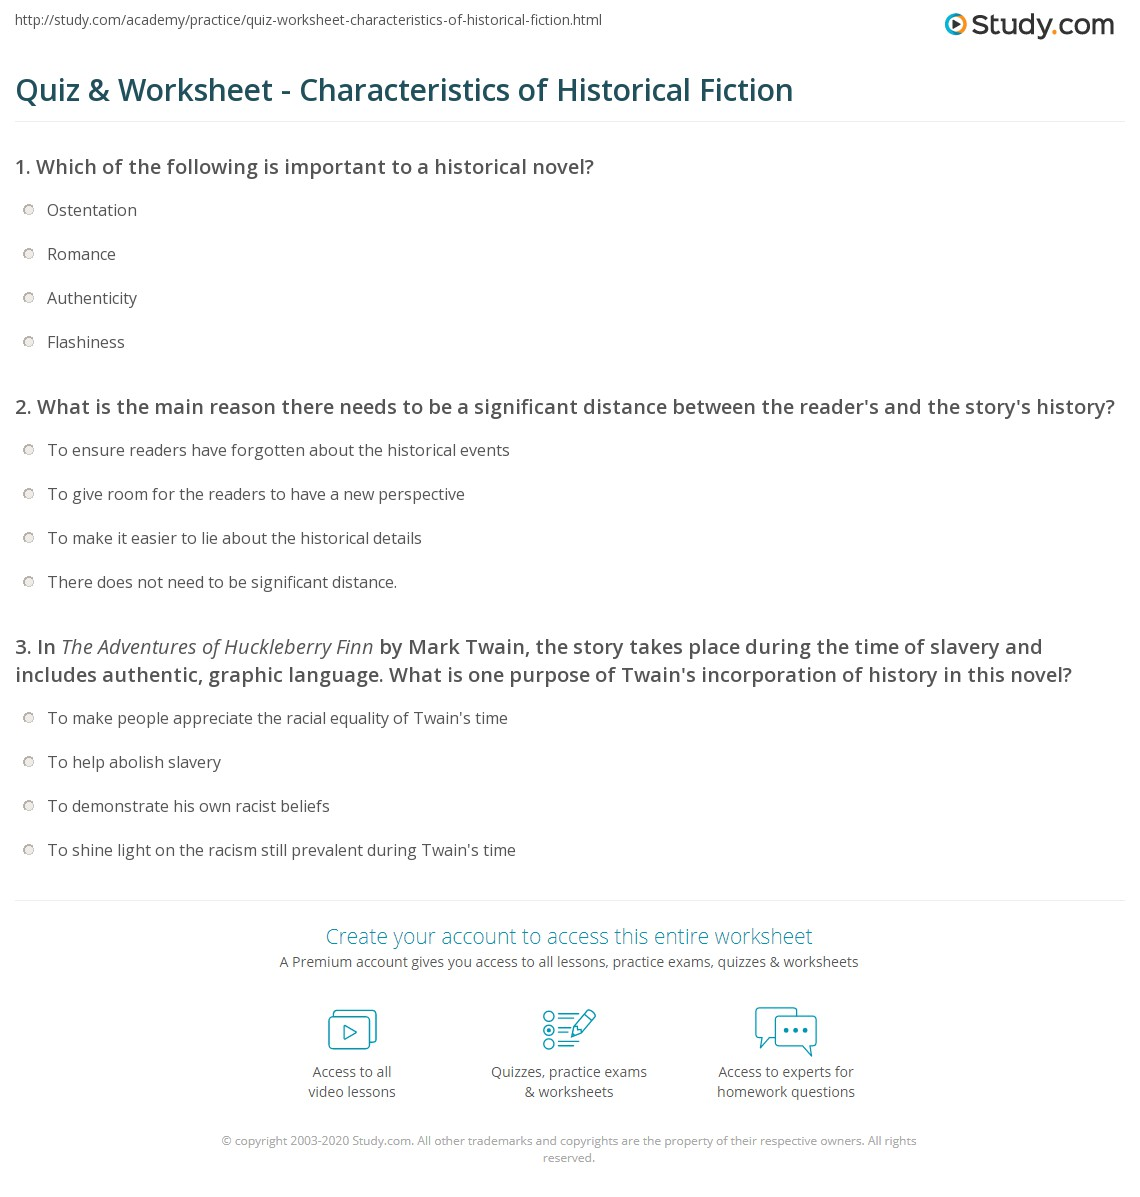 mark twain essay quiz worksheet characteristics of historical  quiz worksheet characteristics of historical fiction com already registered login here for access essay tom sawyer